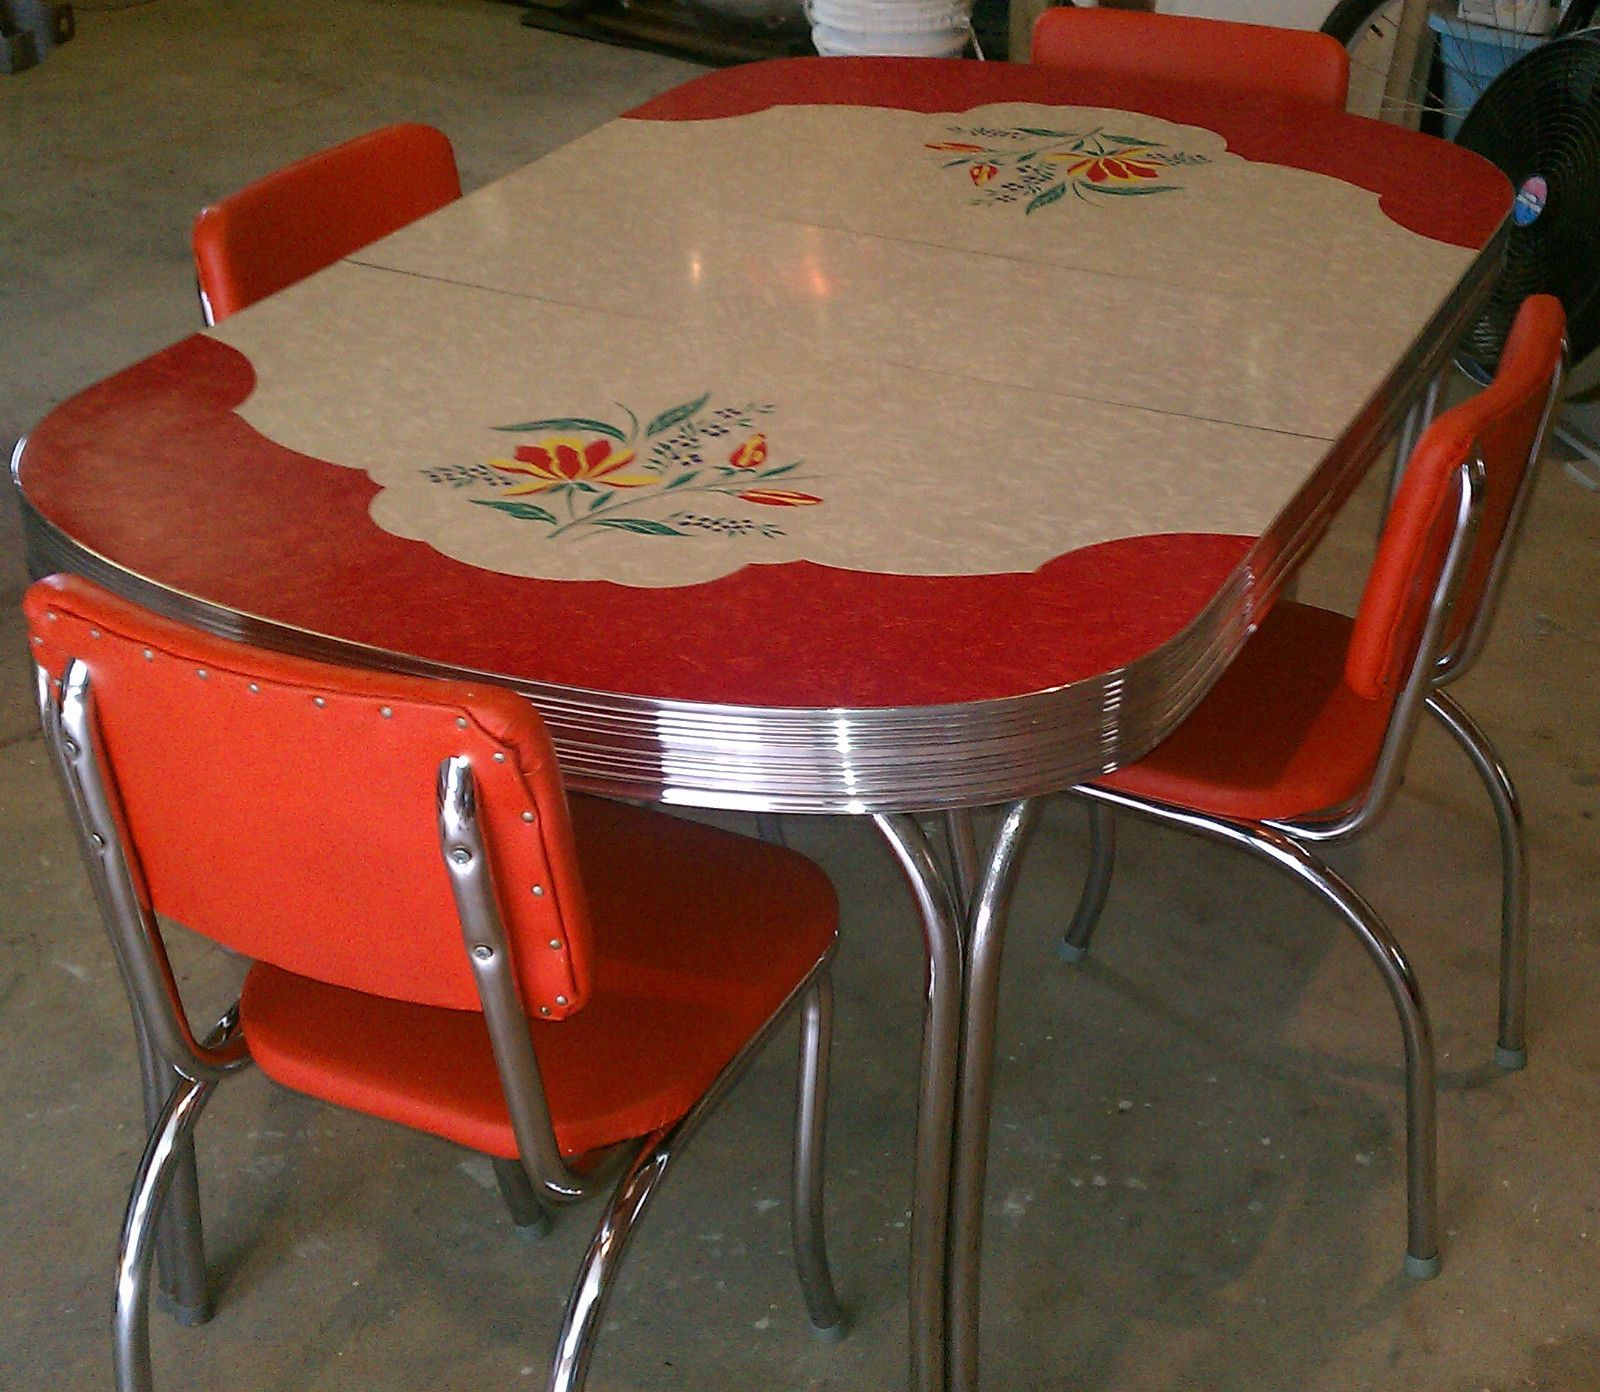 Vintage kitchen formica table 4 chairs chrome orange red for Kitchen set red